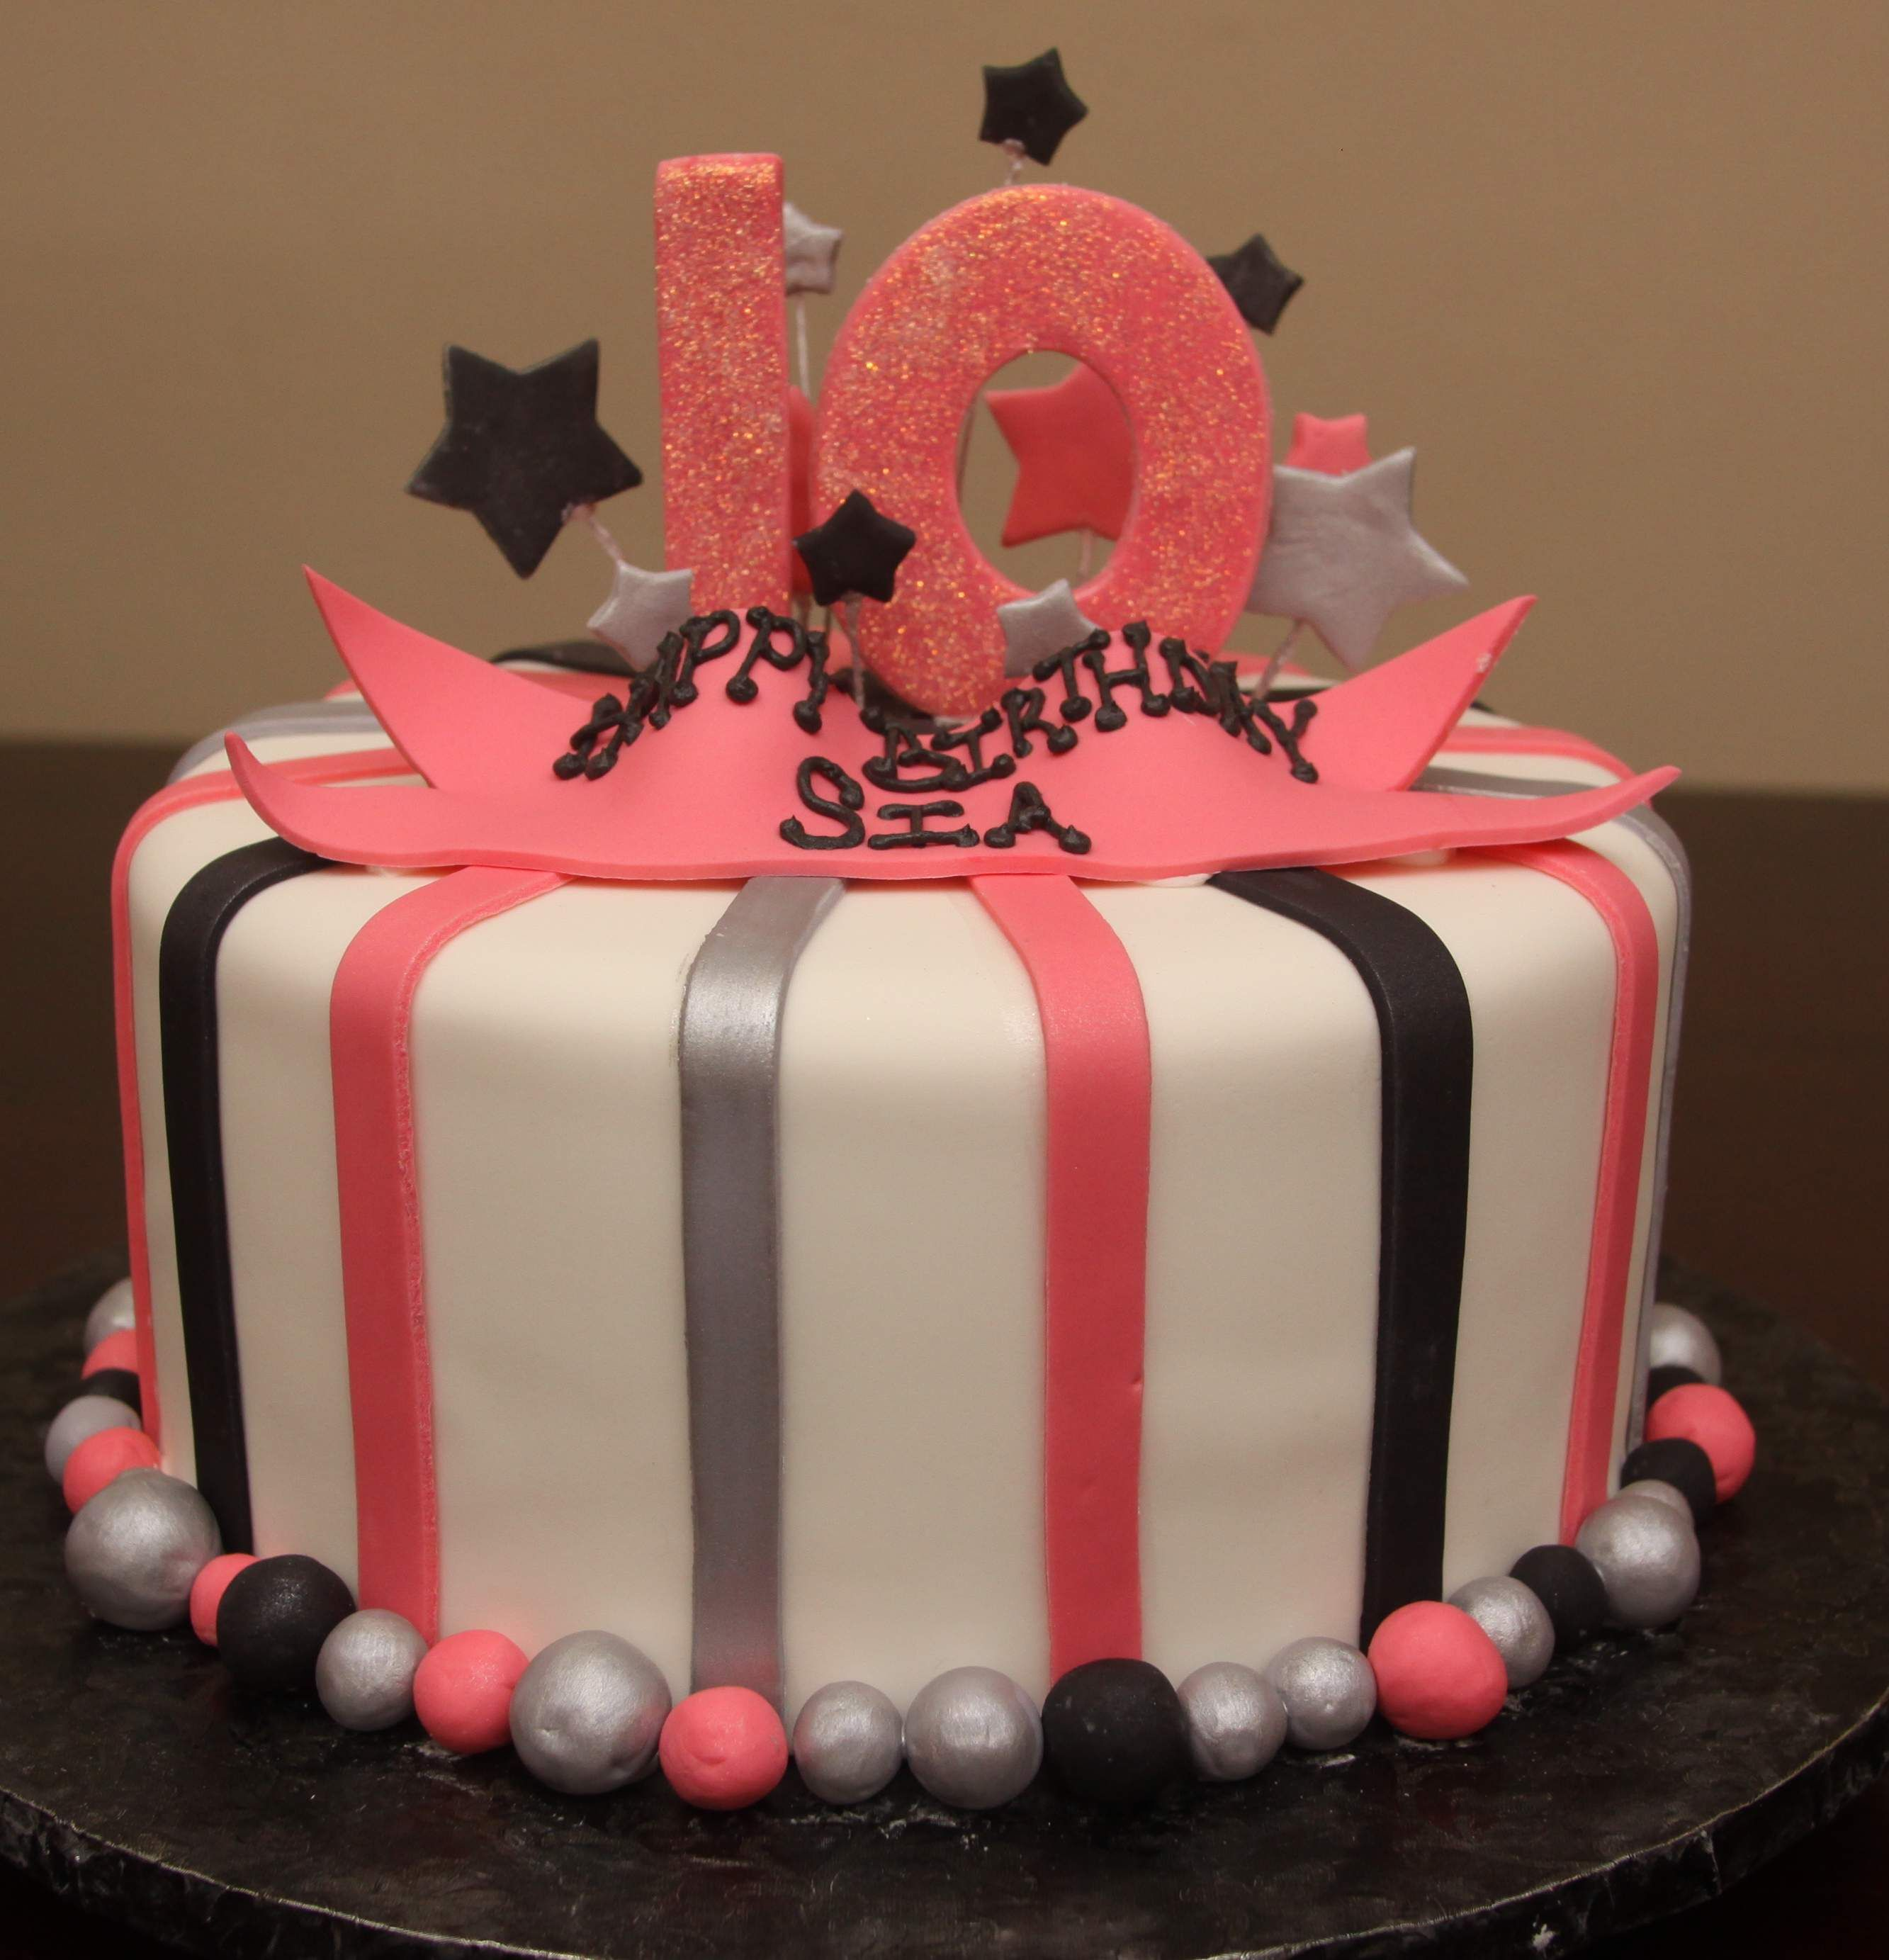 Birthday Cake For 10yr Old Girl Birthday Cakes 10 Birthday Cake 10th Birthday Cakes For Girls Birthday Cake For Men Easy